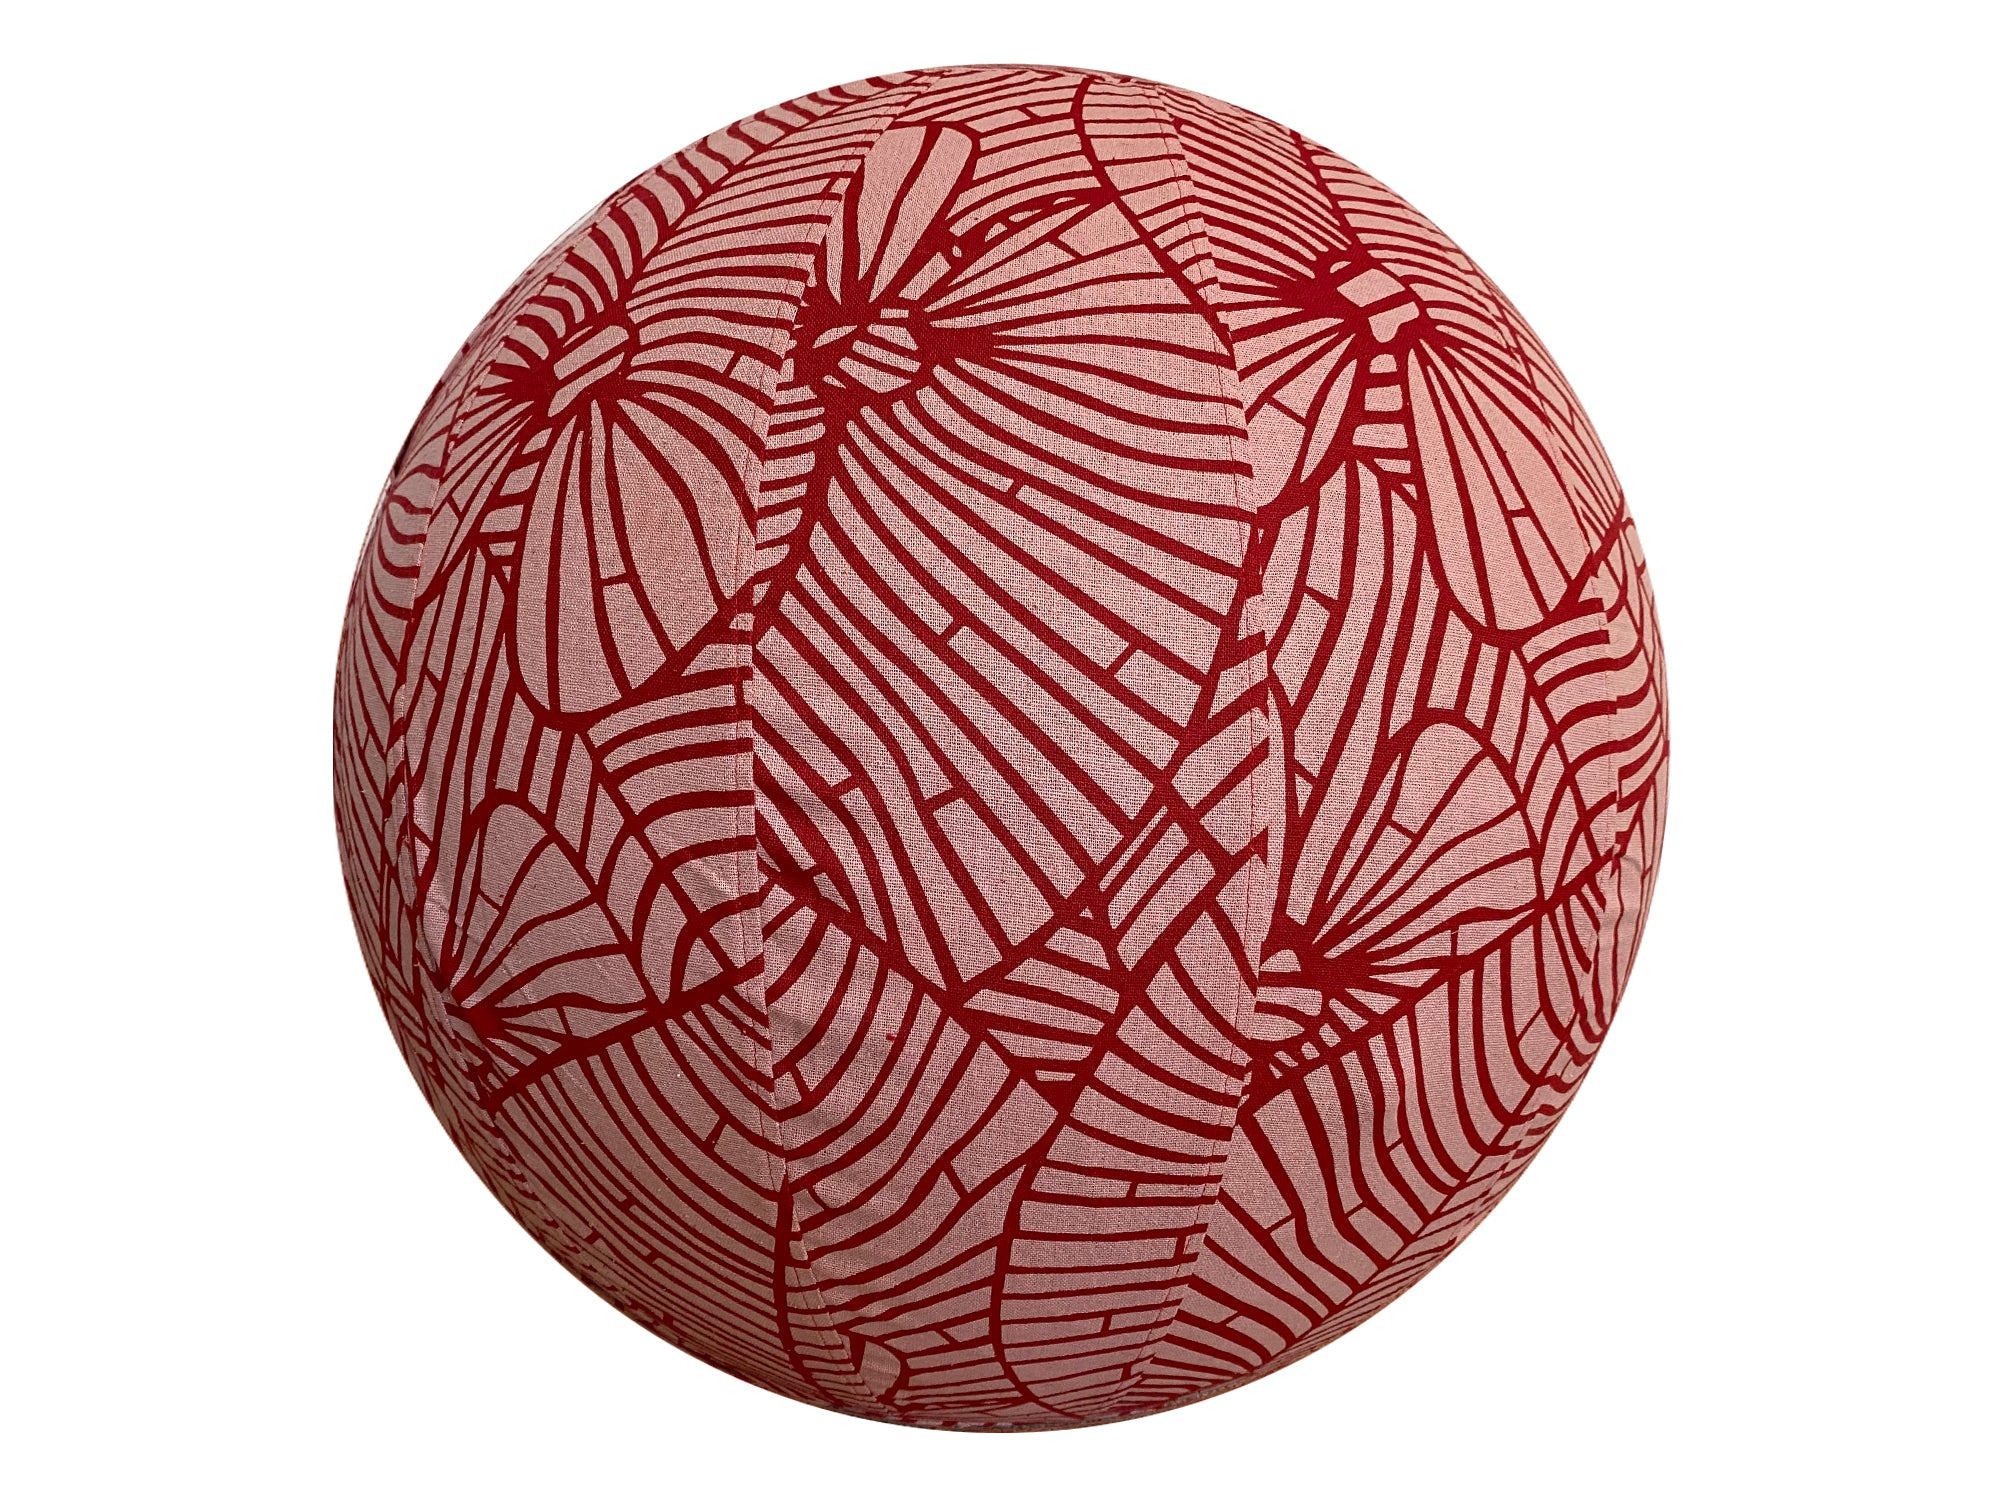 55cm Balance Ball / Yoga Ball Cover: Palm Leaf in Papaya